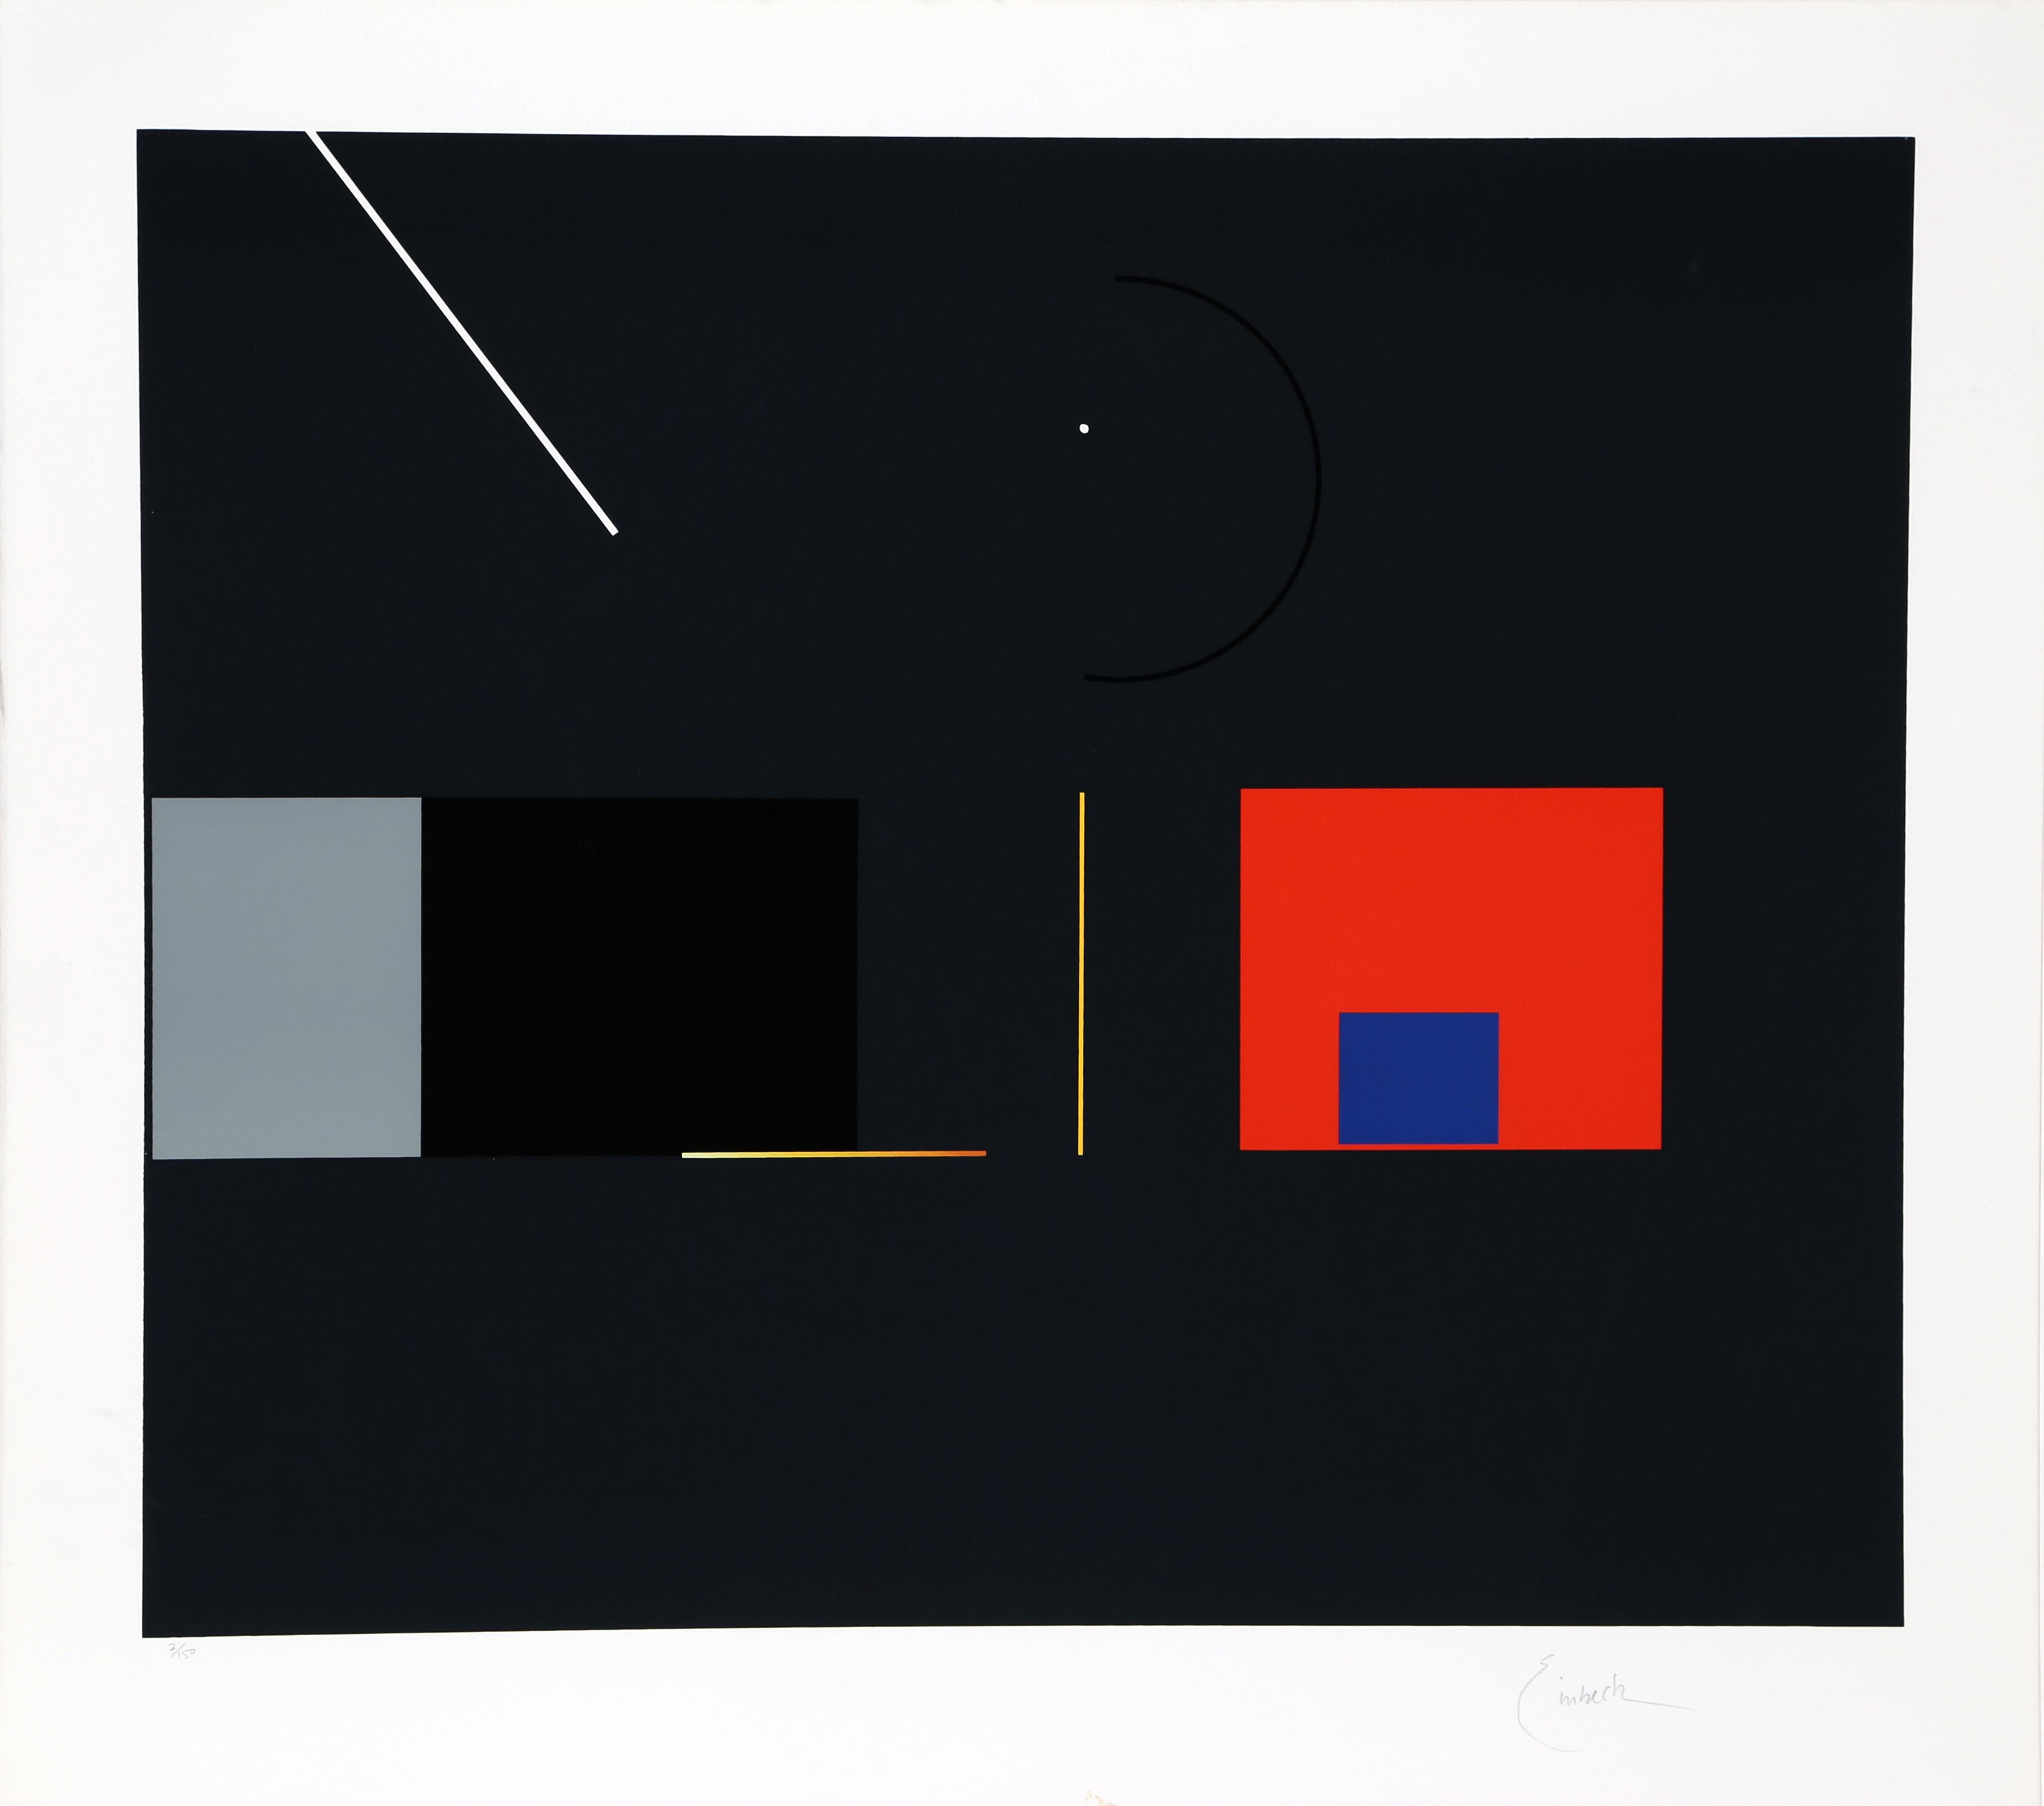 Geometric Serigraph I on Arches by Robert Einbeck